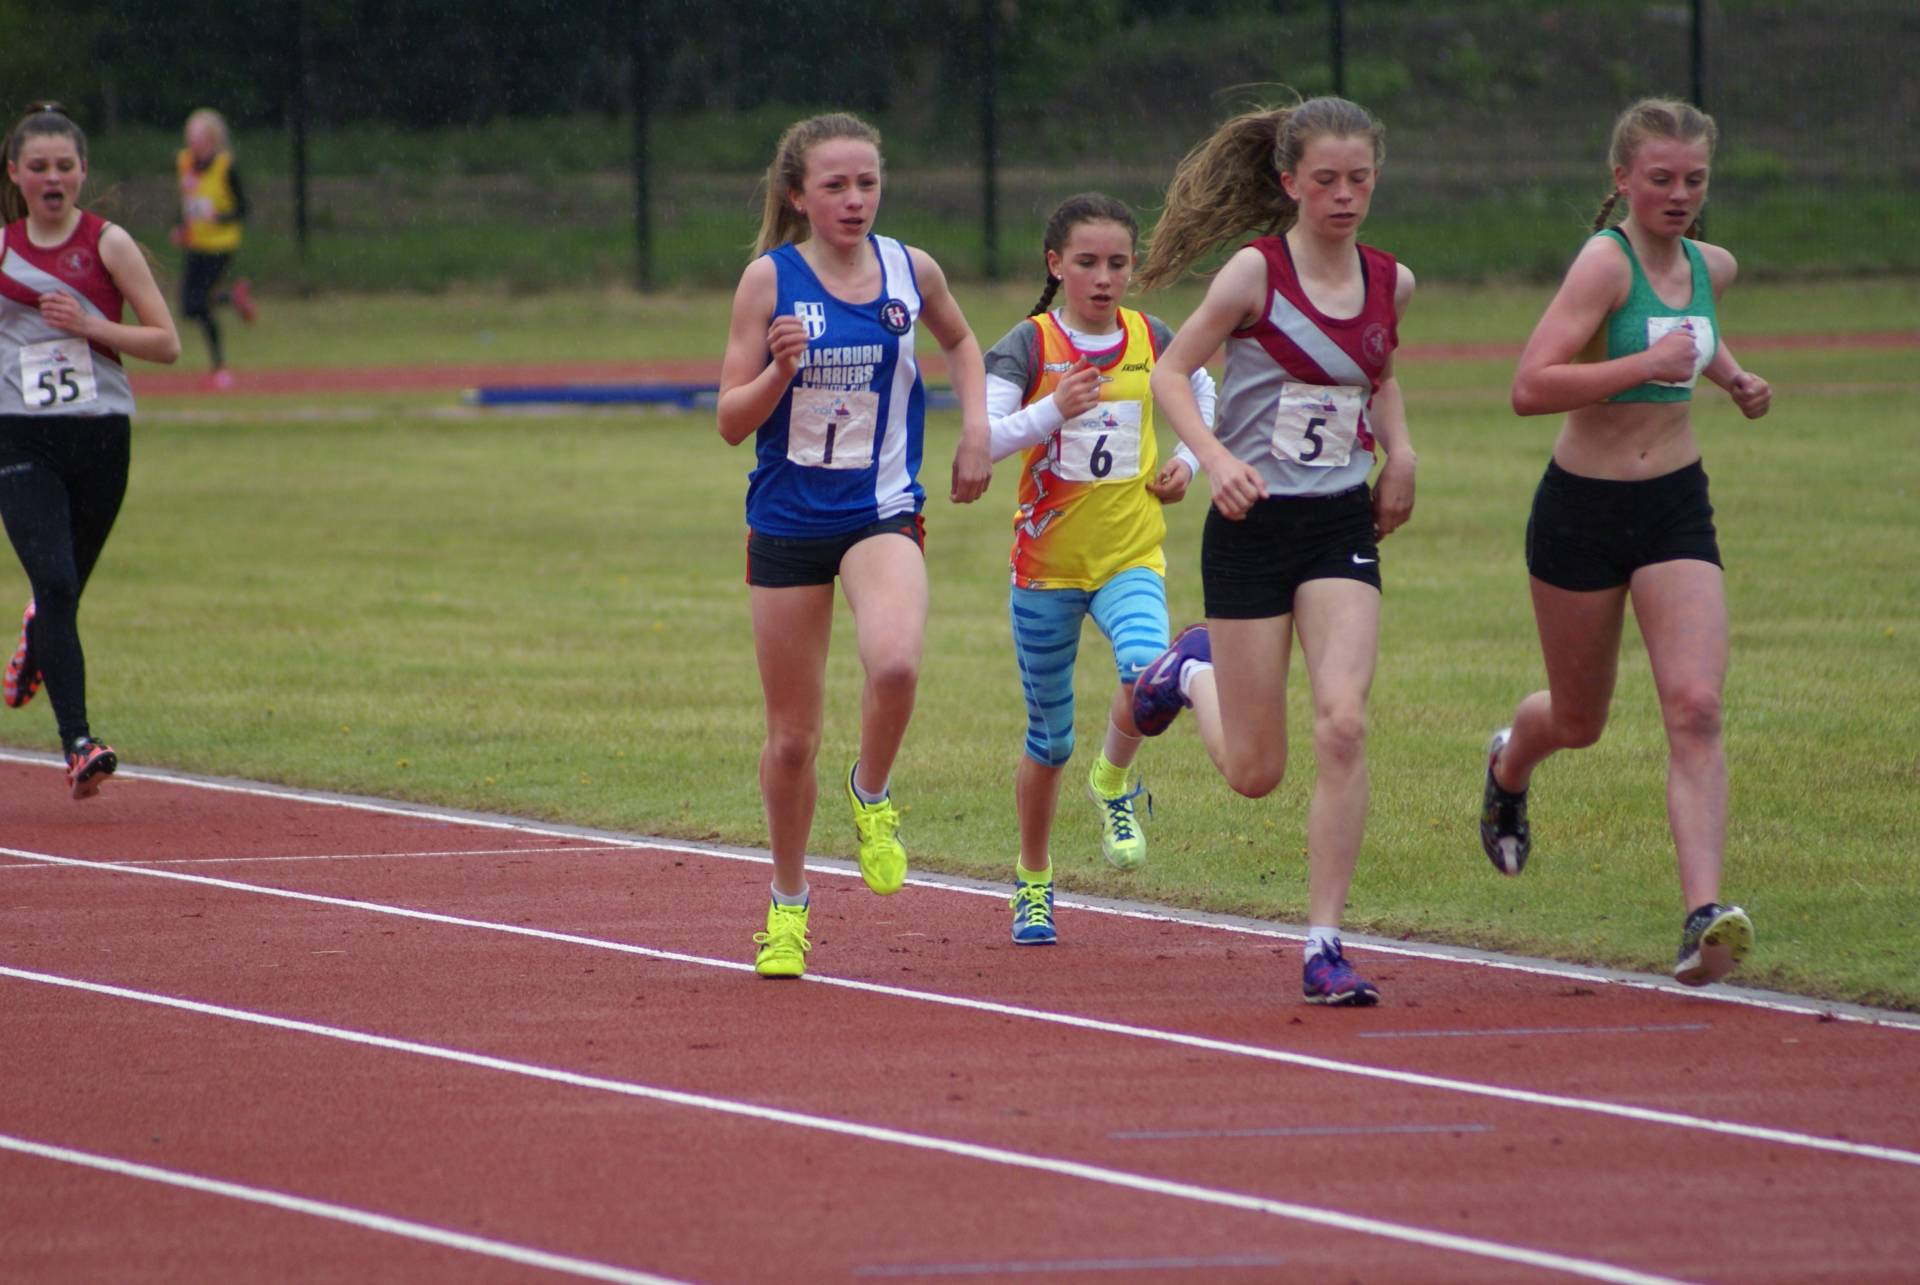 20 Wins and 19 PB's in a great start for the Harriers in YDL U13 & U15 League